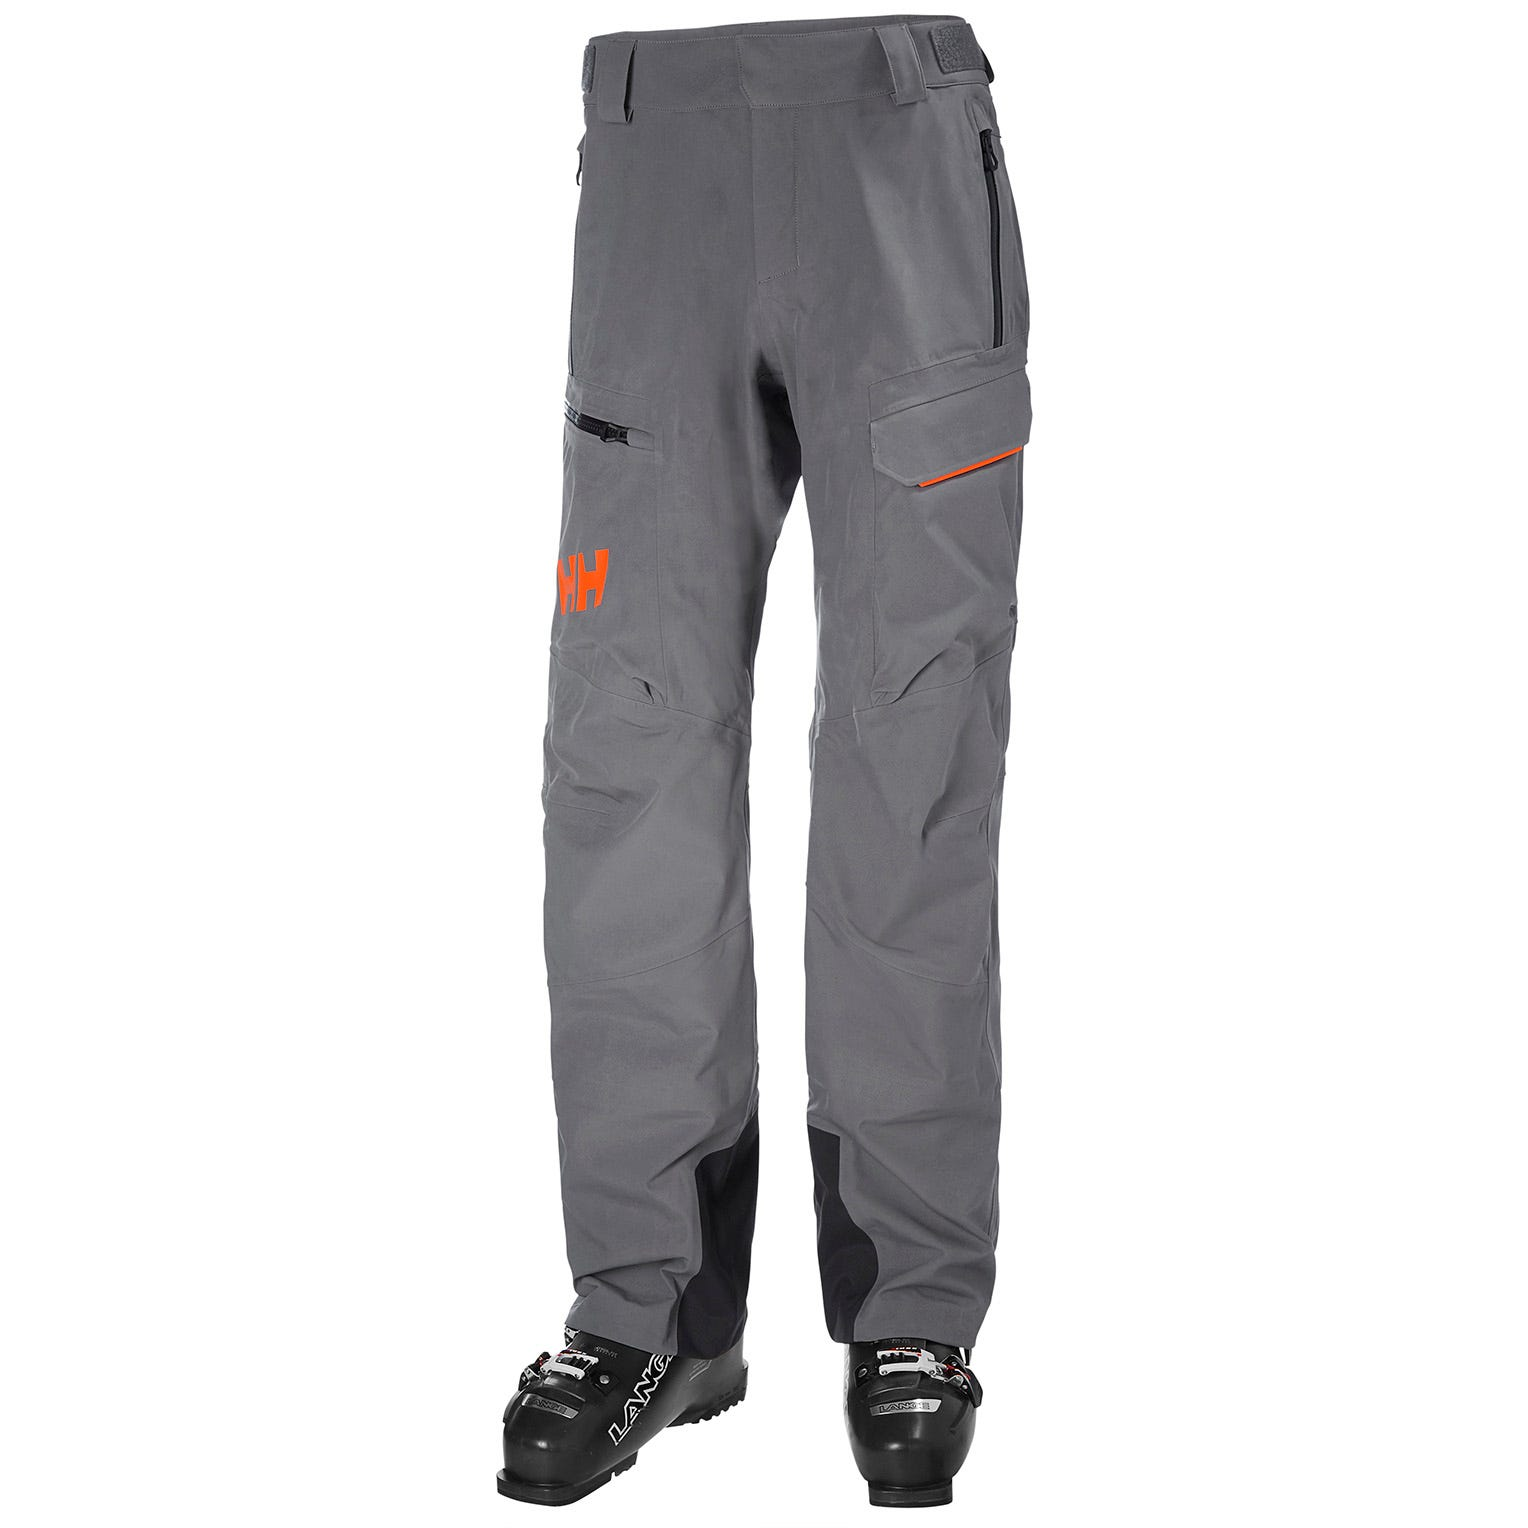 Helly Hansen Mens Ski Trouser Grey XXL